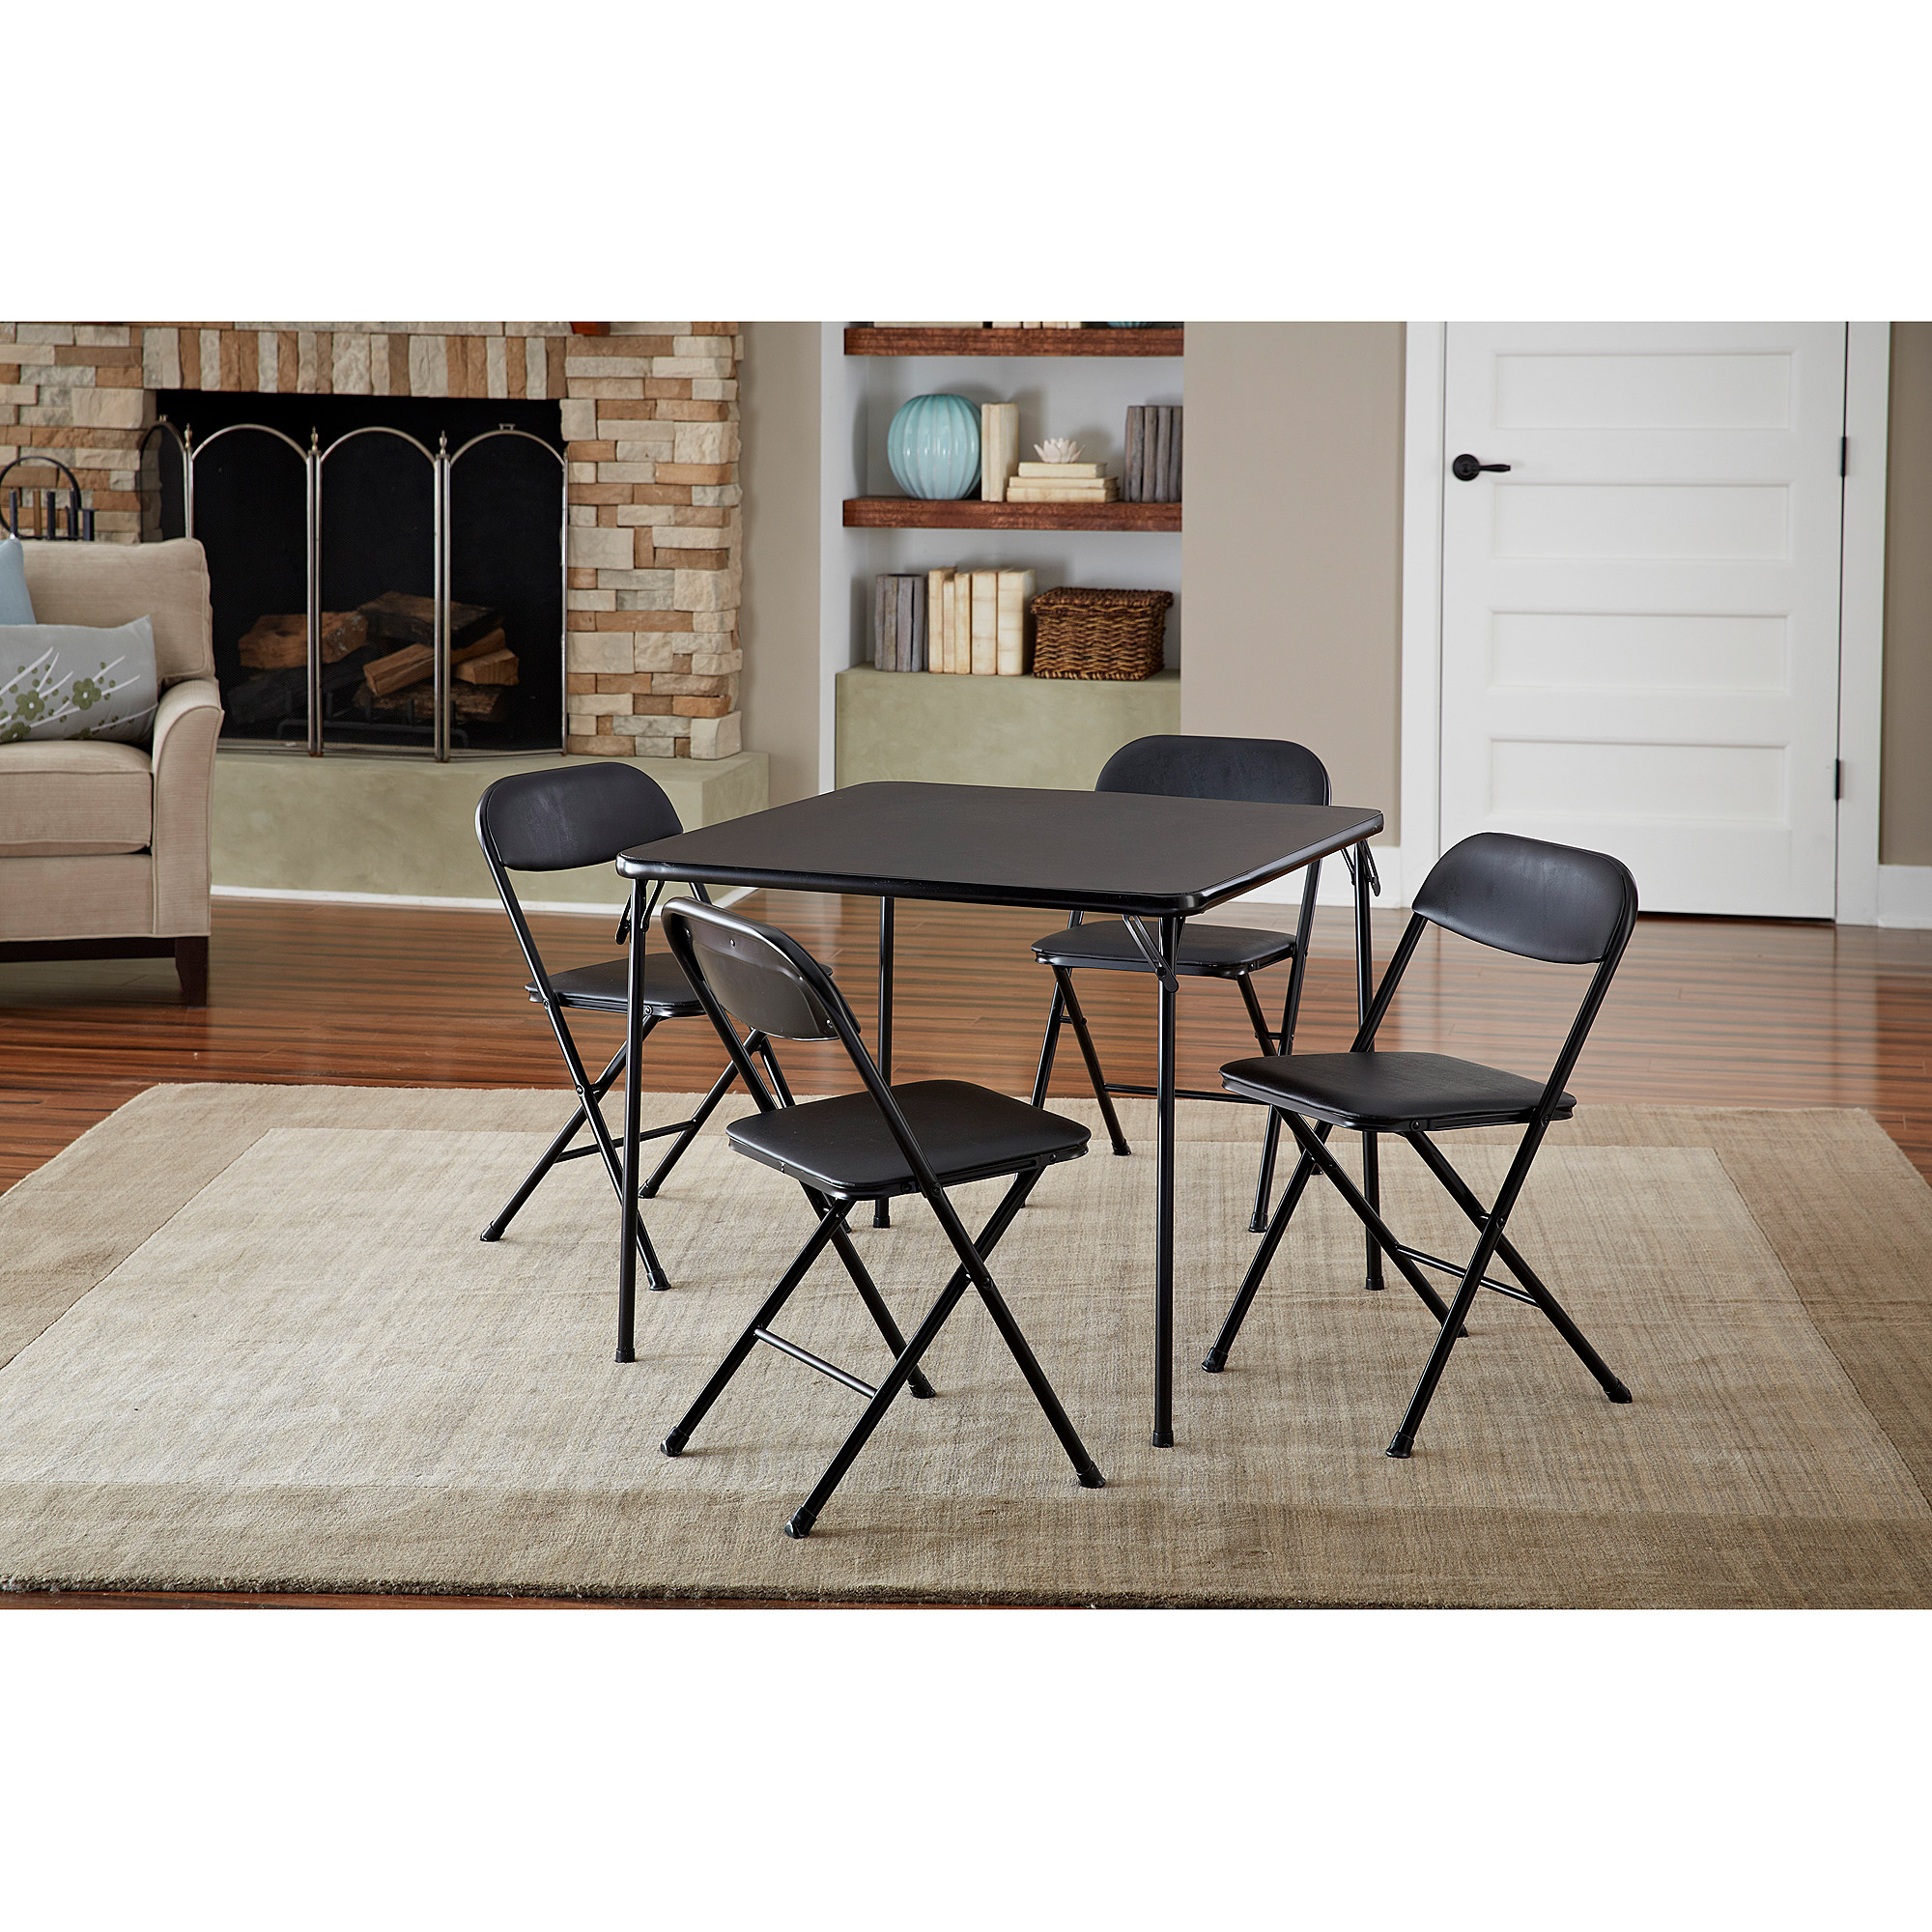 Beautiful folding chairs and tables cosco 5-piece card table set, black - walmart.com tieucld